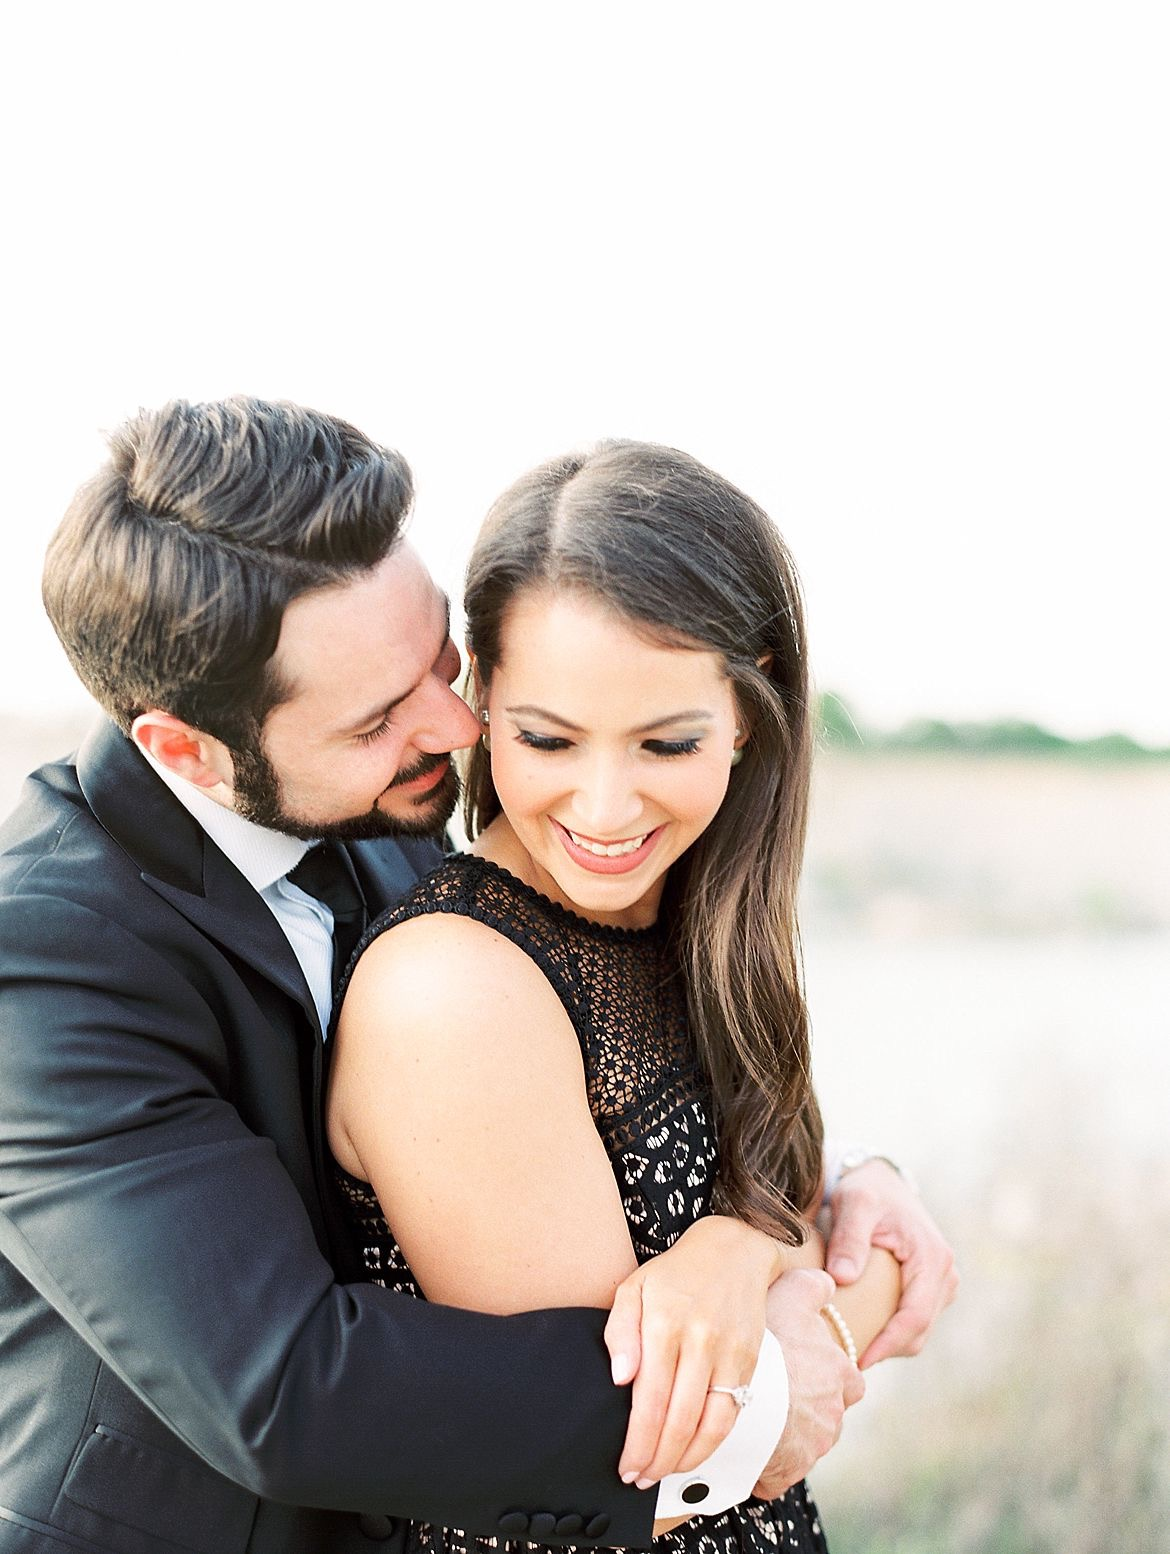 Best Engagement Inspiration Blog